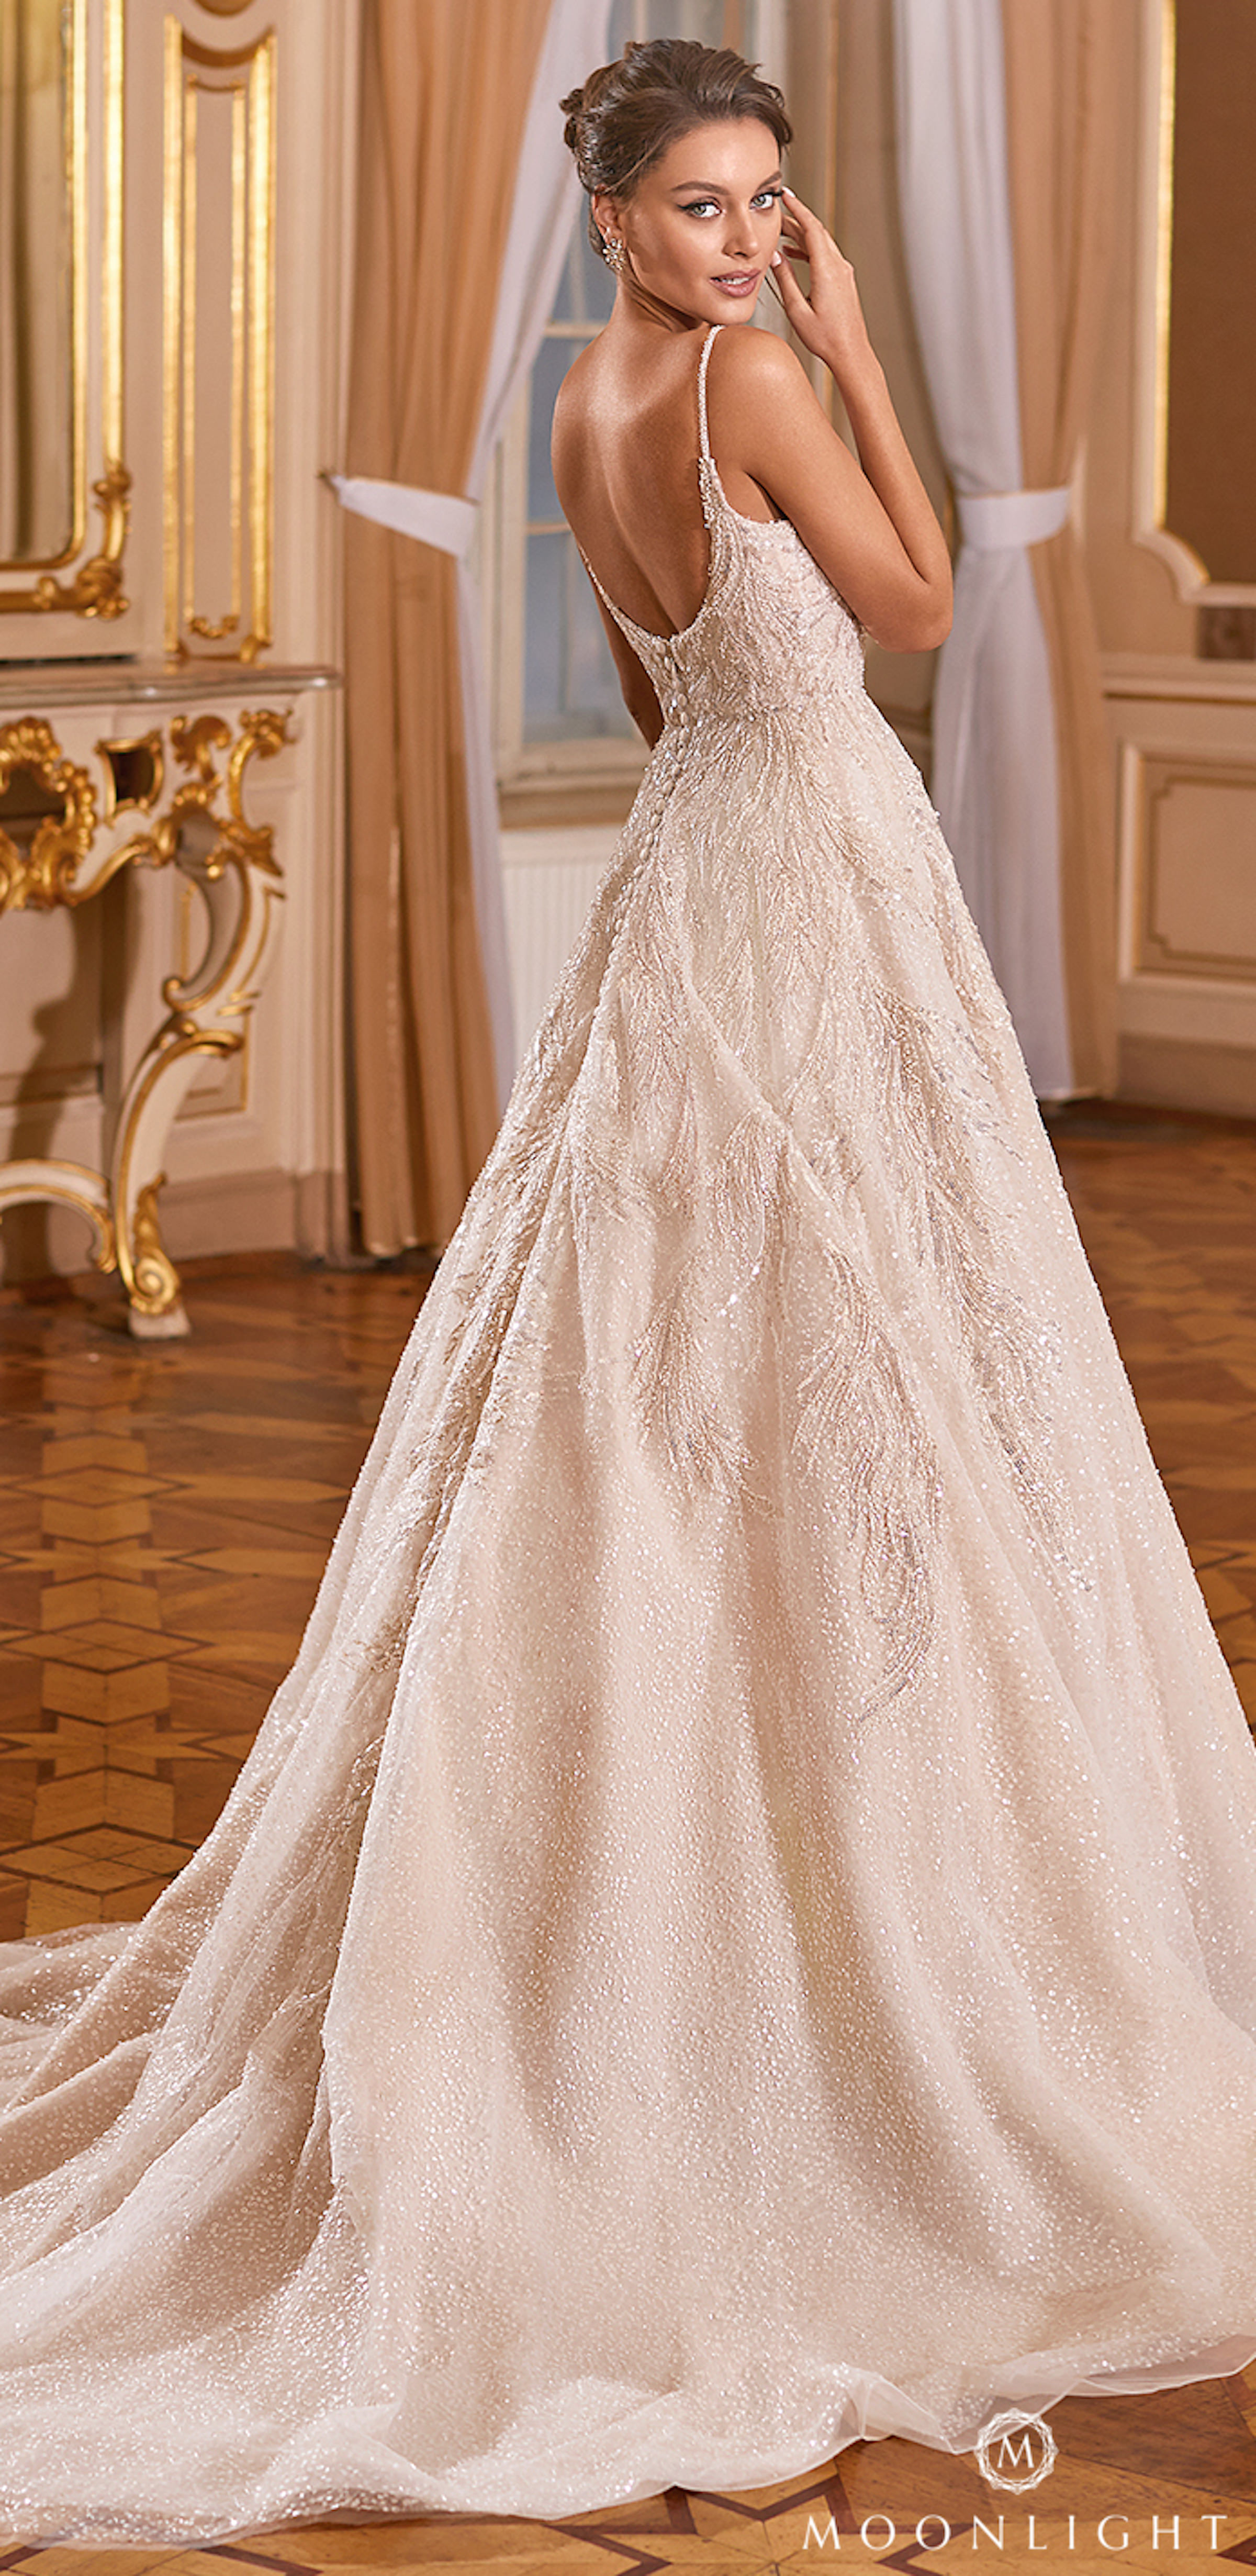 Gilded X Moonlight Collection Fall 2021 Wedding Dresses - J6824